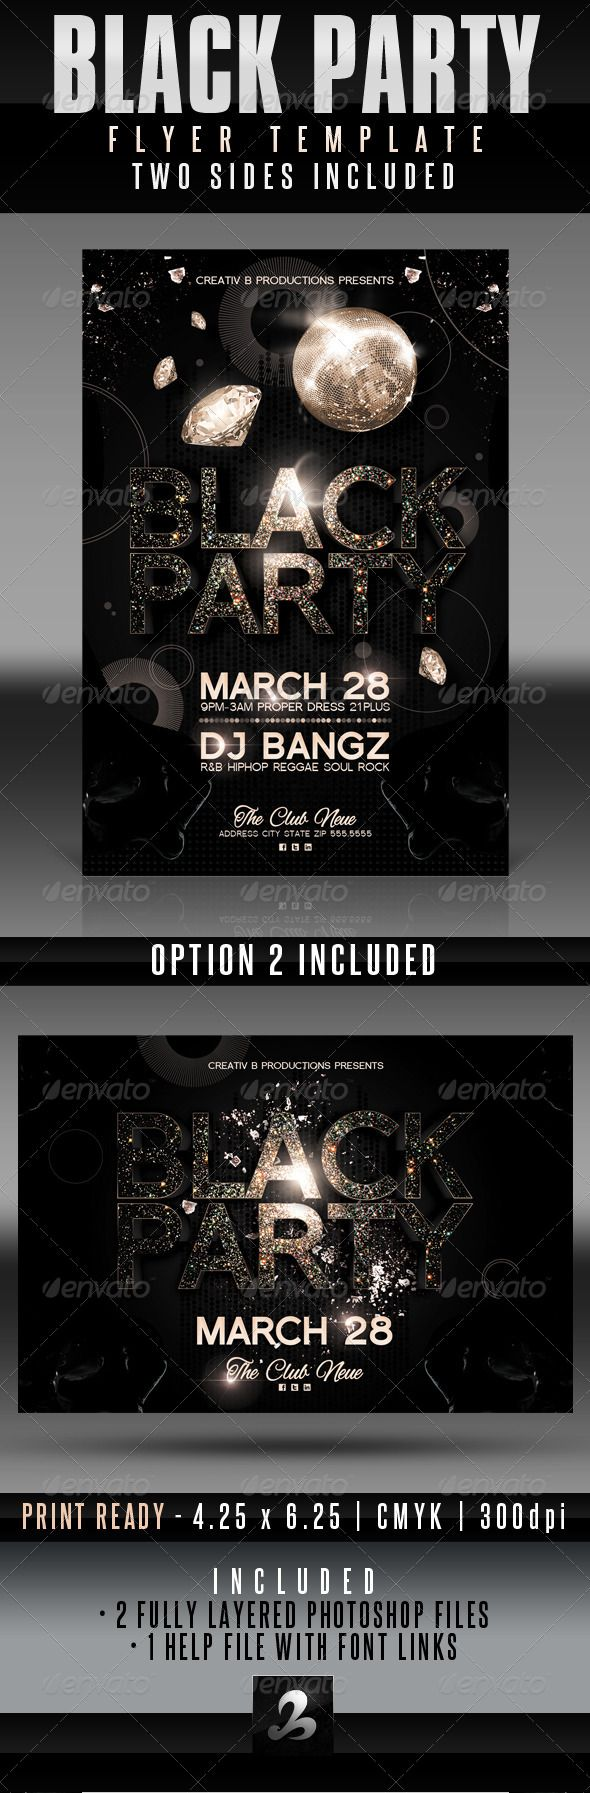 best flyer templates psd tools news resources black party flyer templates